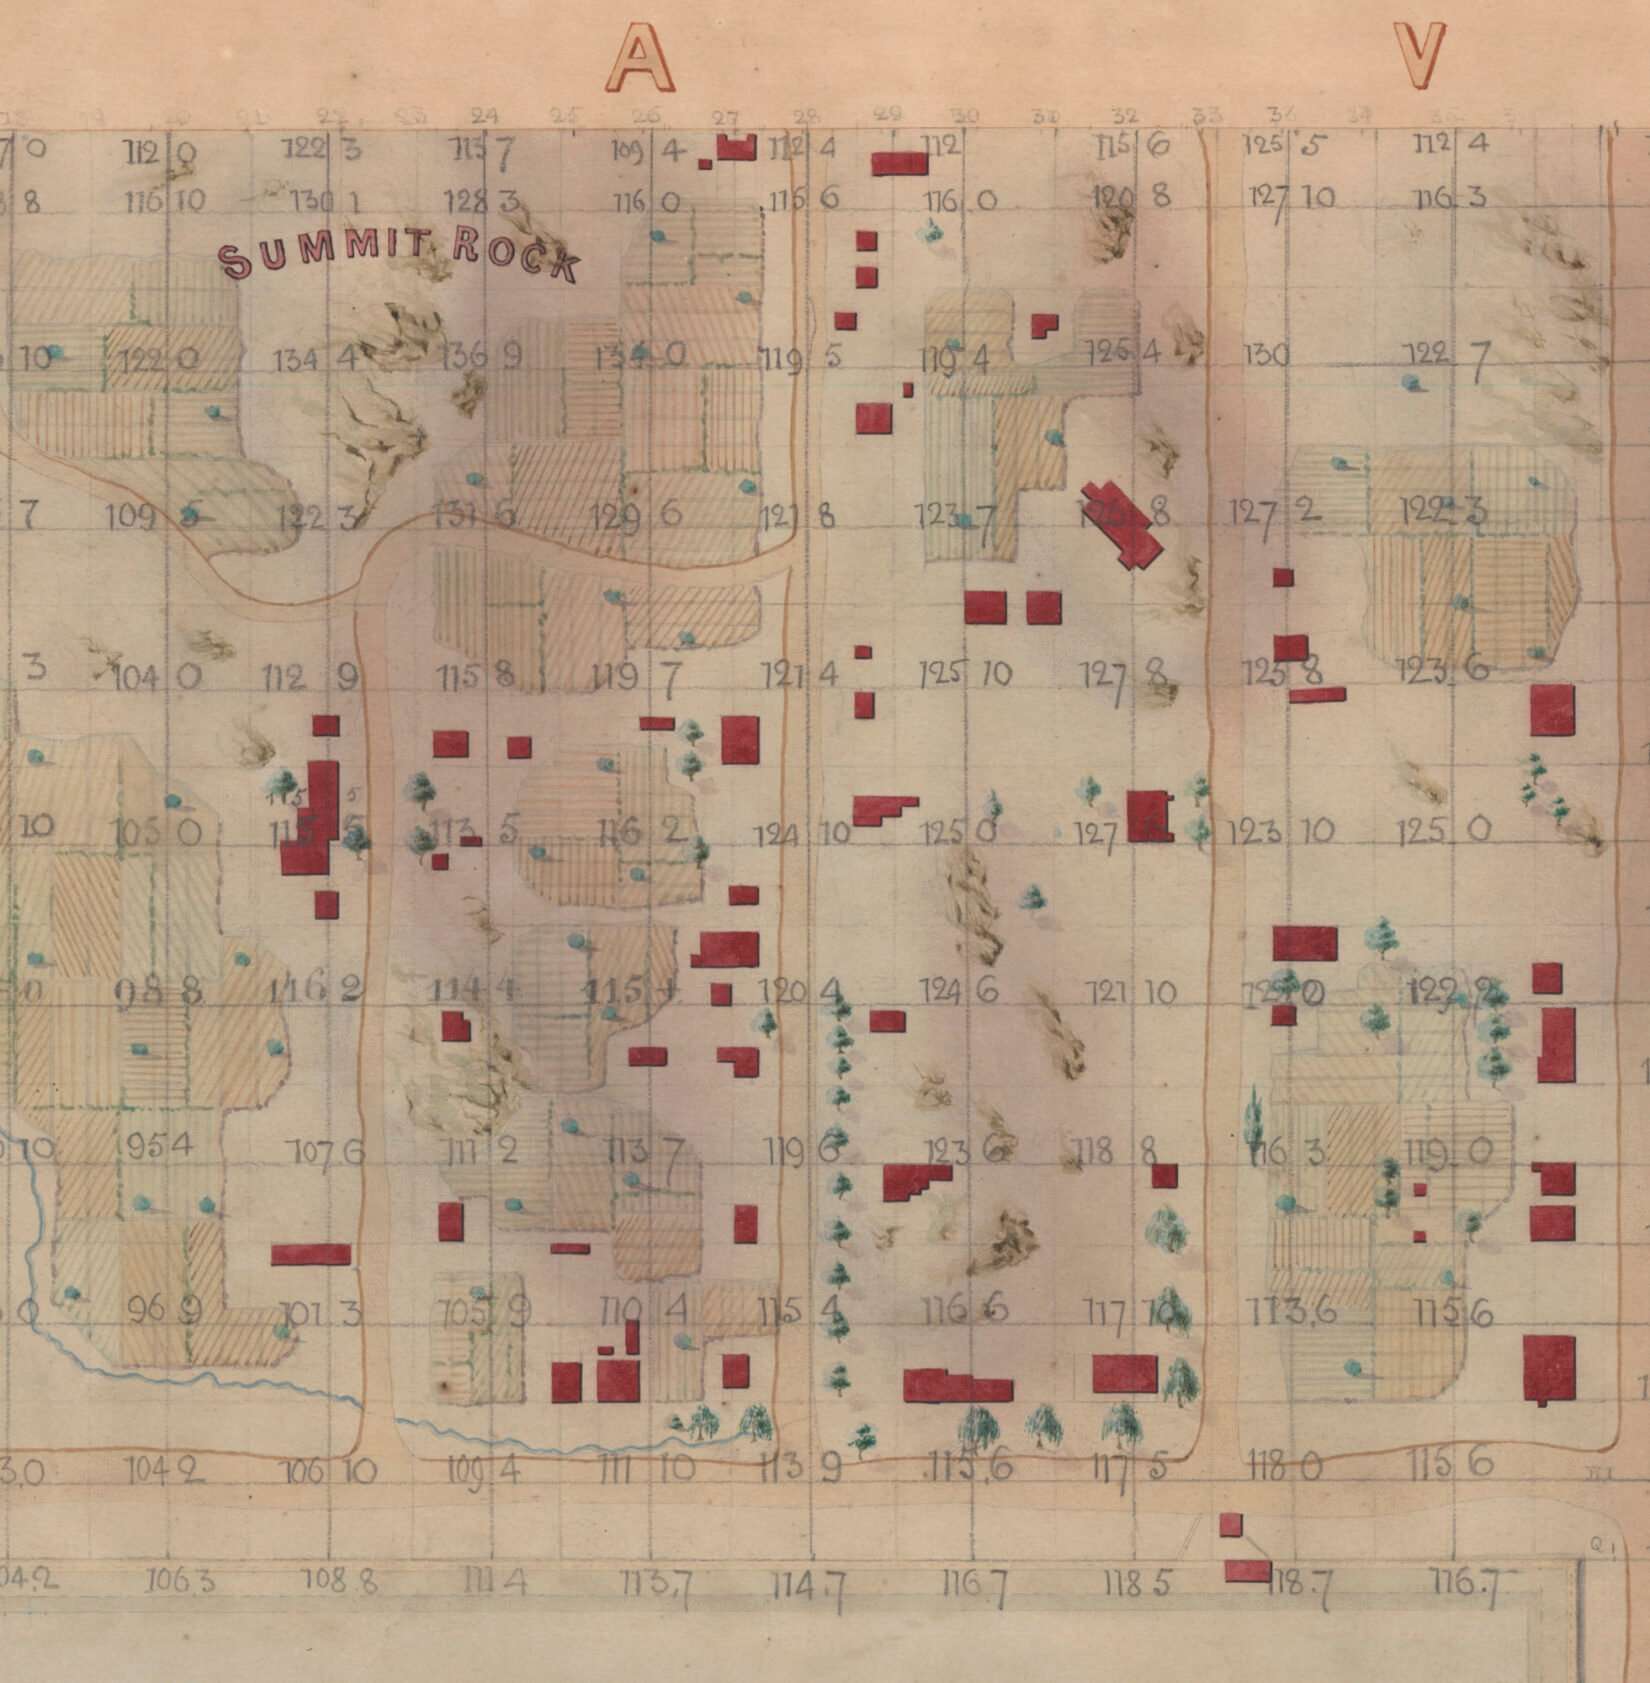 The map is an engraving, slightly discolored by age, with homes shown in red